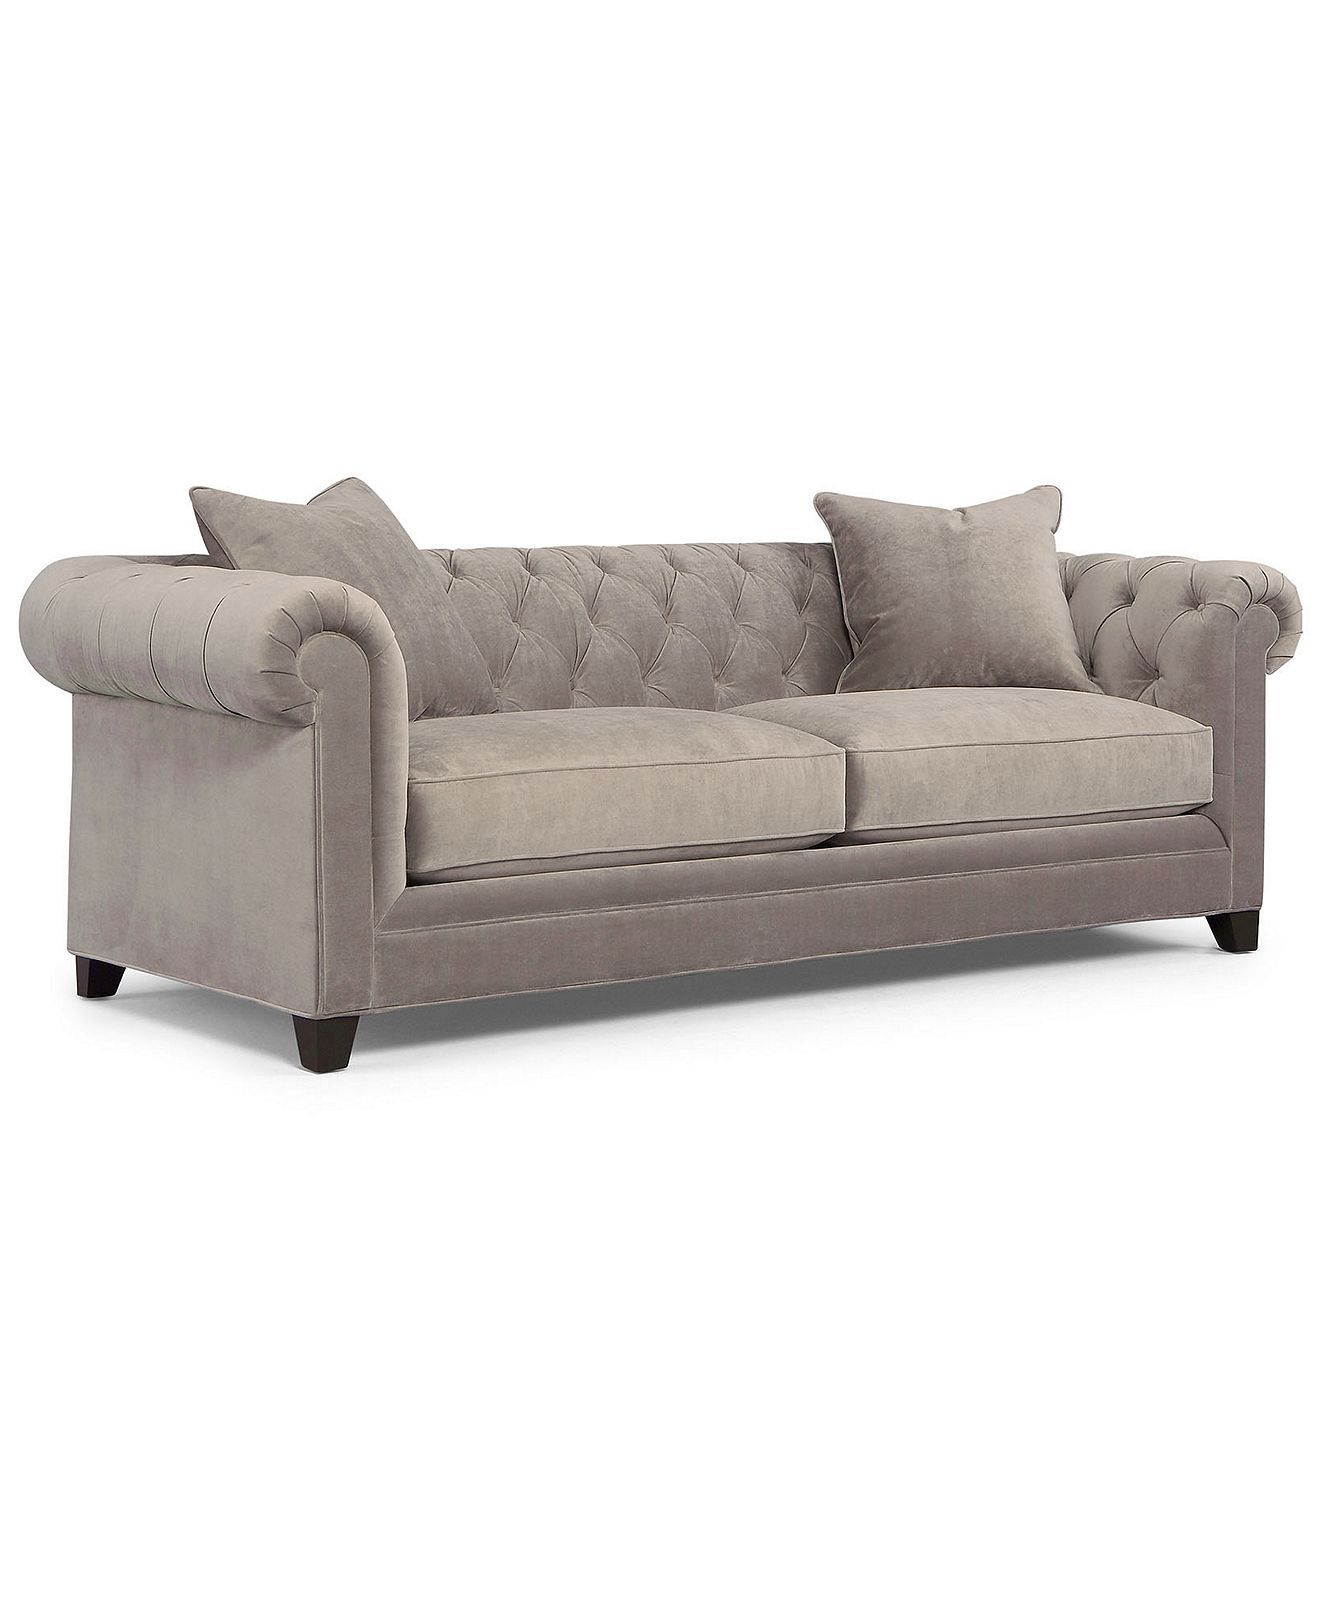 Martha Stewart Collection Saybridge Sofa | Couch Sofa, Sofa